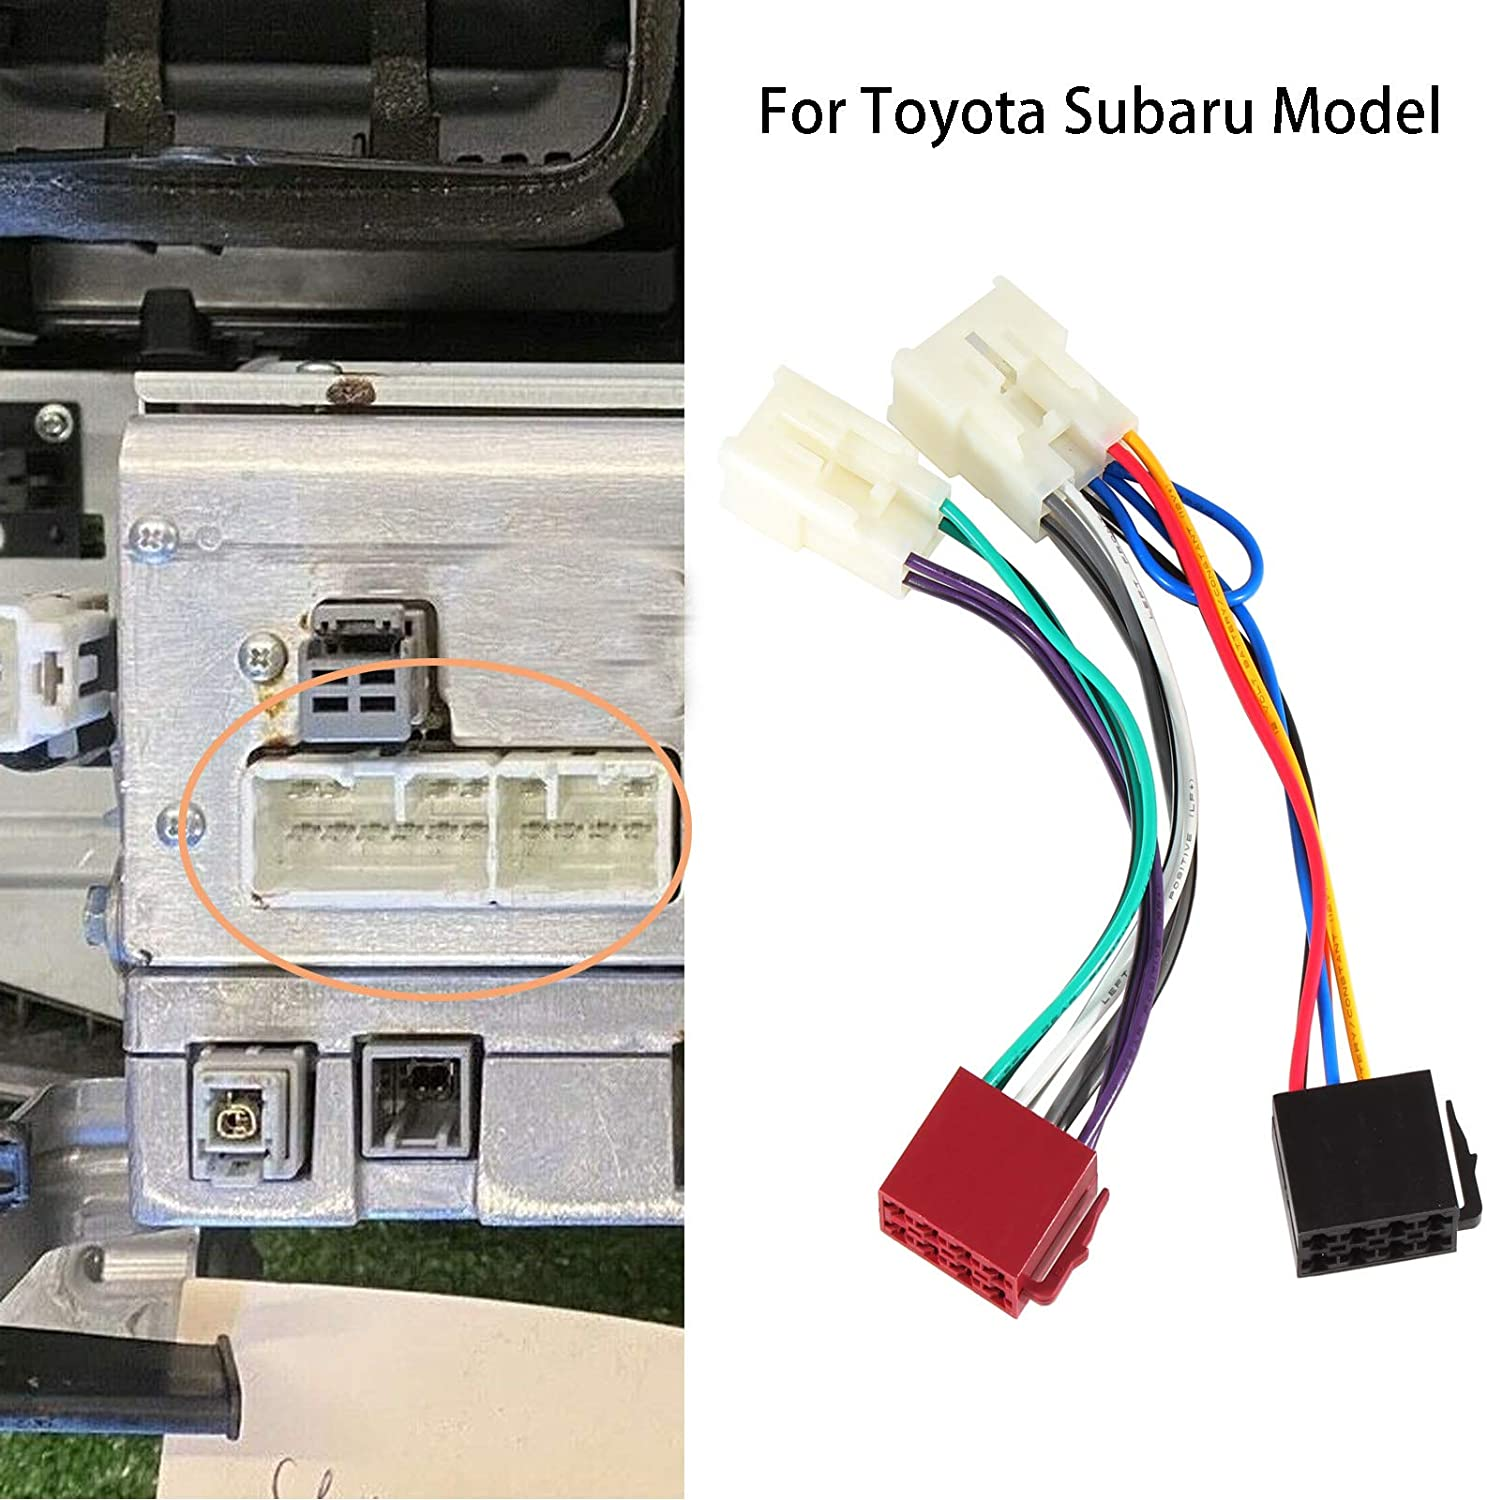 Subaru 2012-2019 WRX 2012-2019 Forester RED WOLF Aftermarket Radio Stereo Install ISO Wire Harness Connector Adapter Replacement for Toyota Tacoma 2005-2020 RAV4 1994-2020